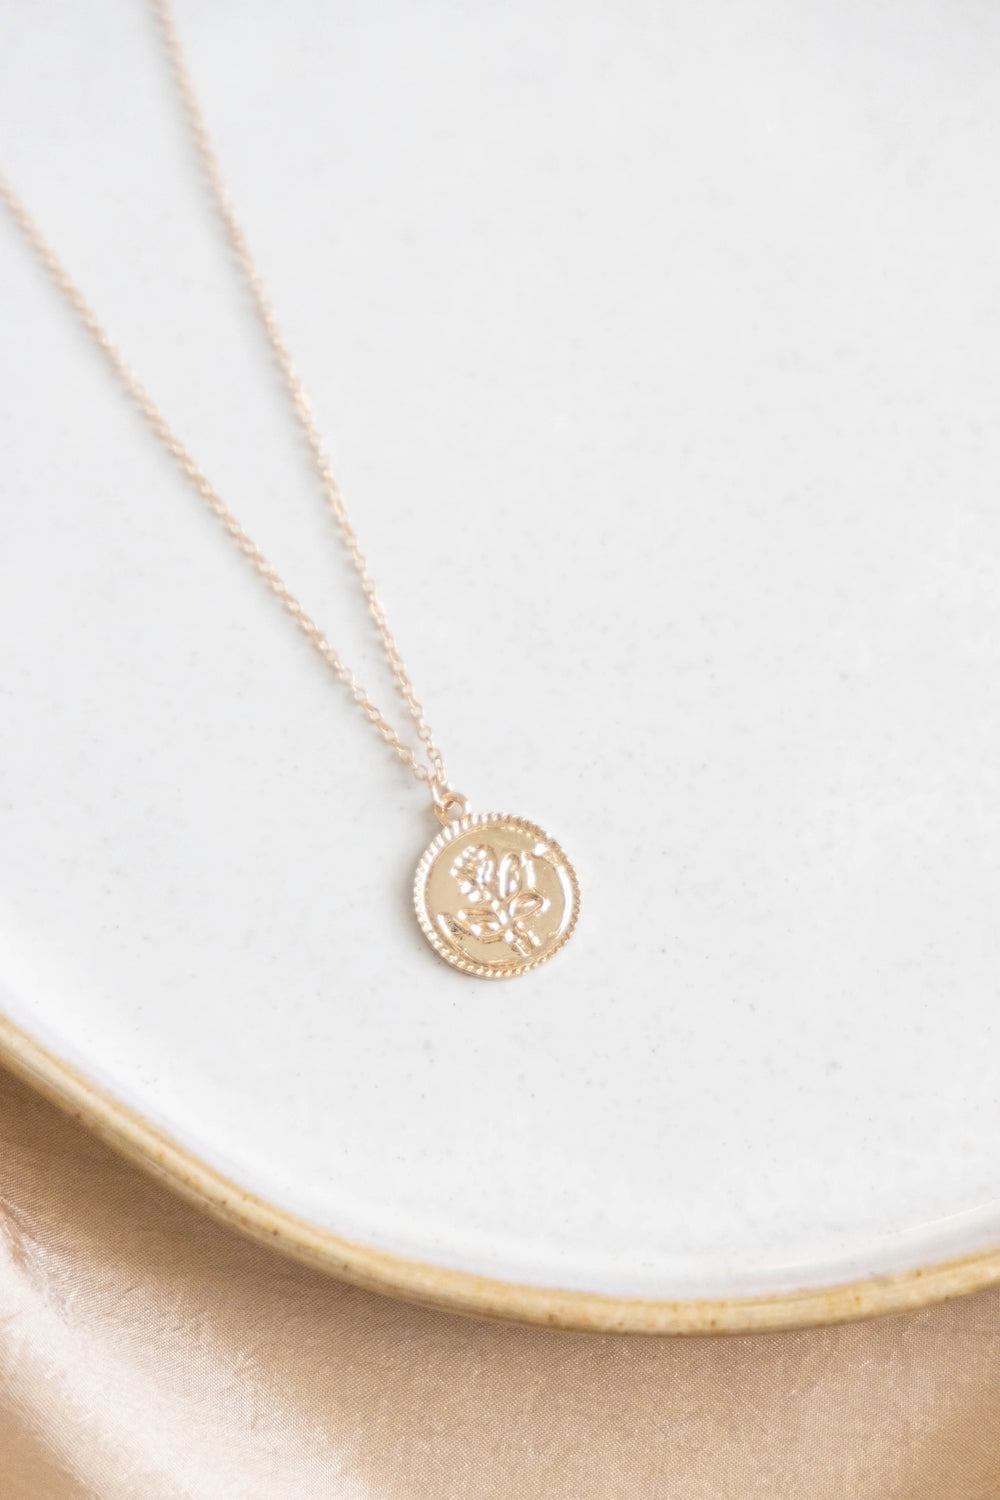 Gold necklace with rose pendant on white background